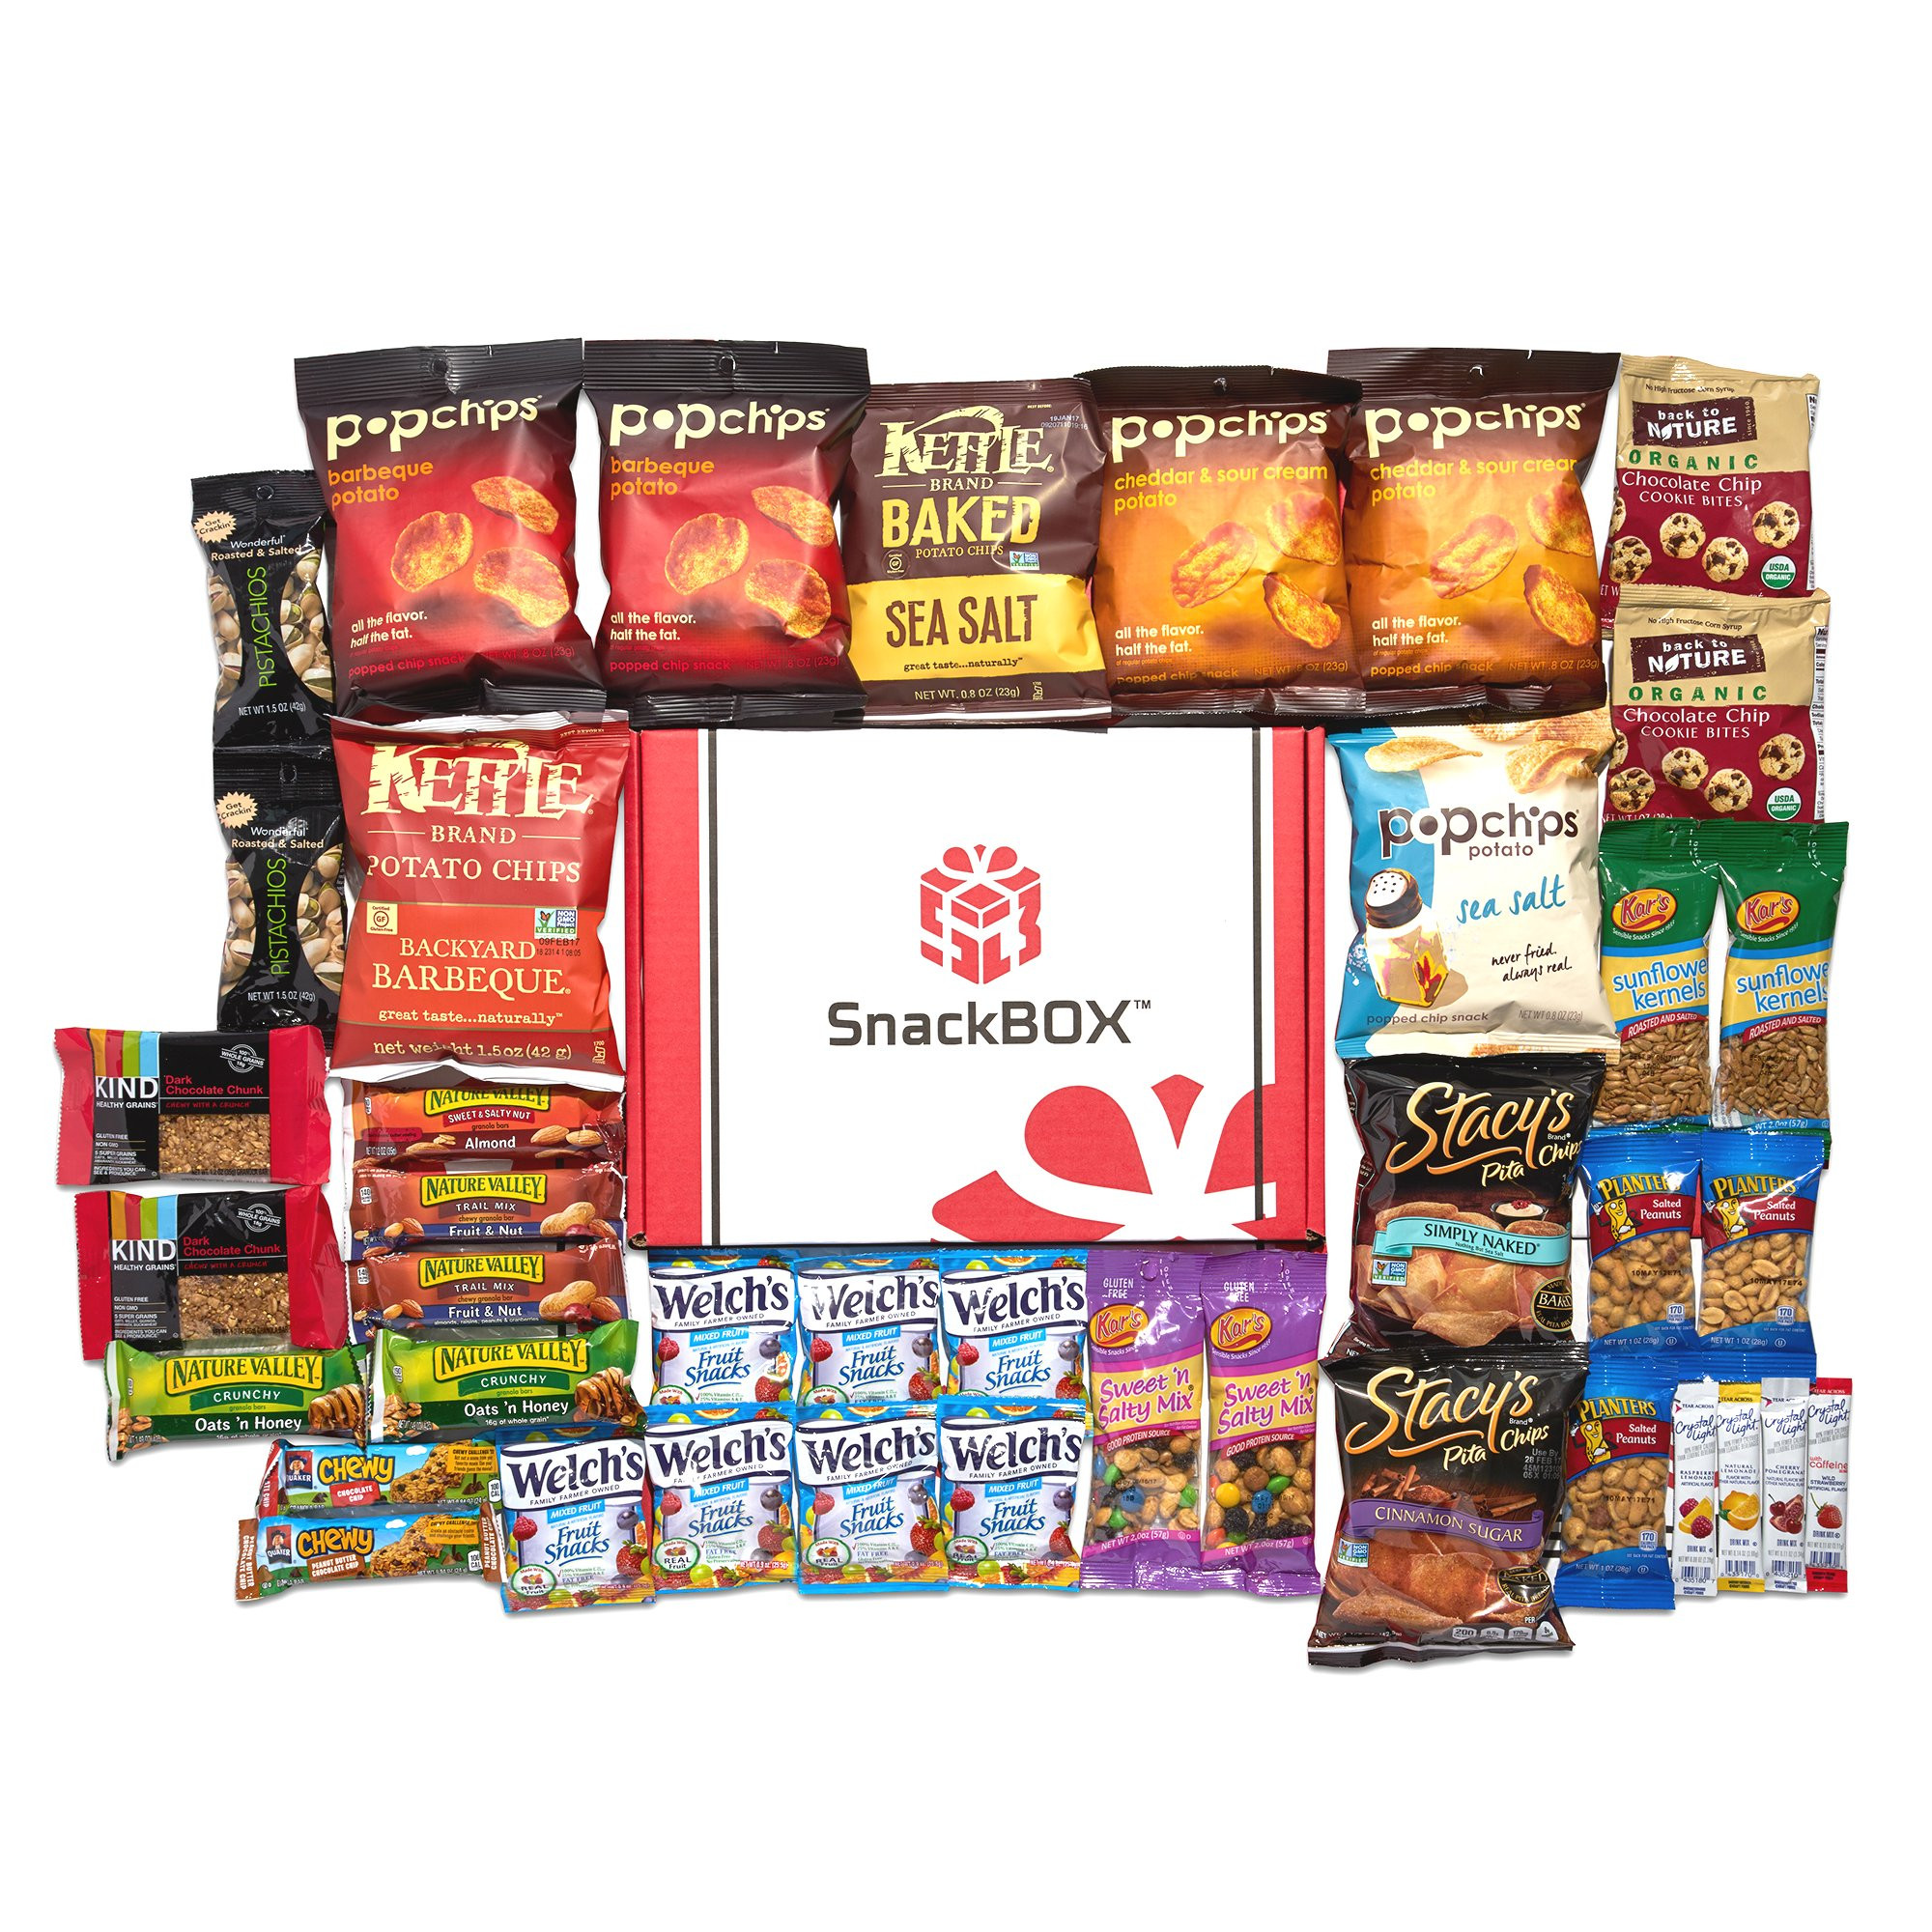 Healthy Snacks Amazon  Amazon Healthy Snacks Care Package 45 Count by The